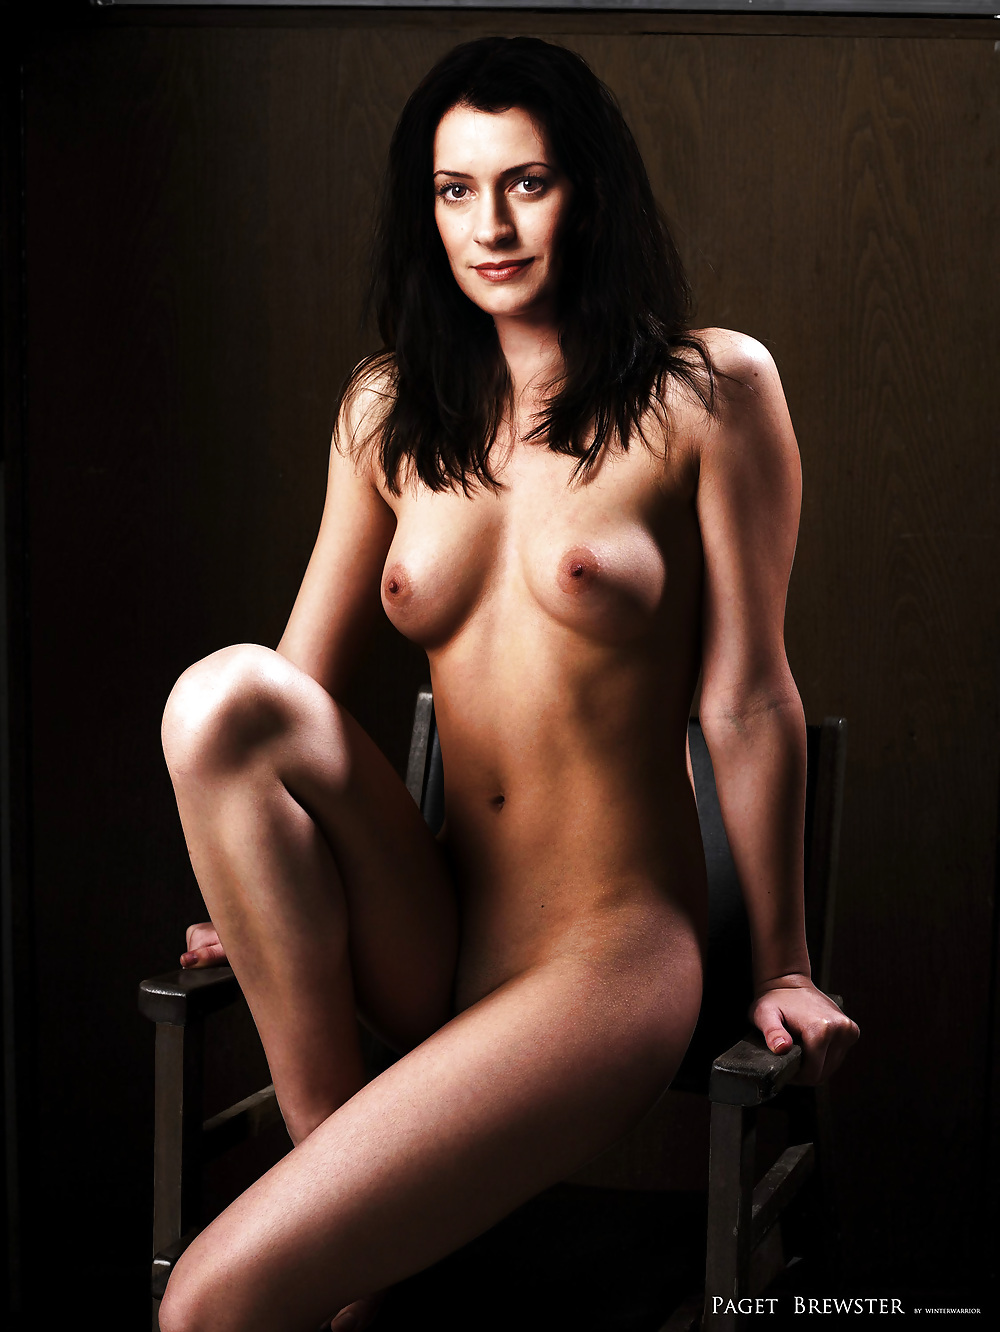 Stars Paget Brewster Nude Images Pics